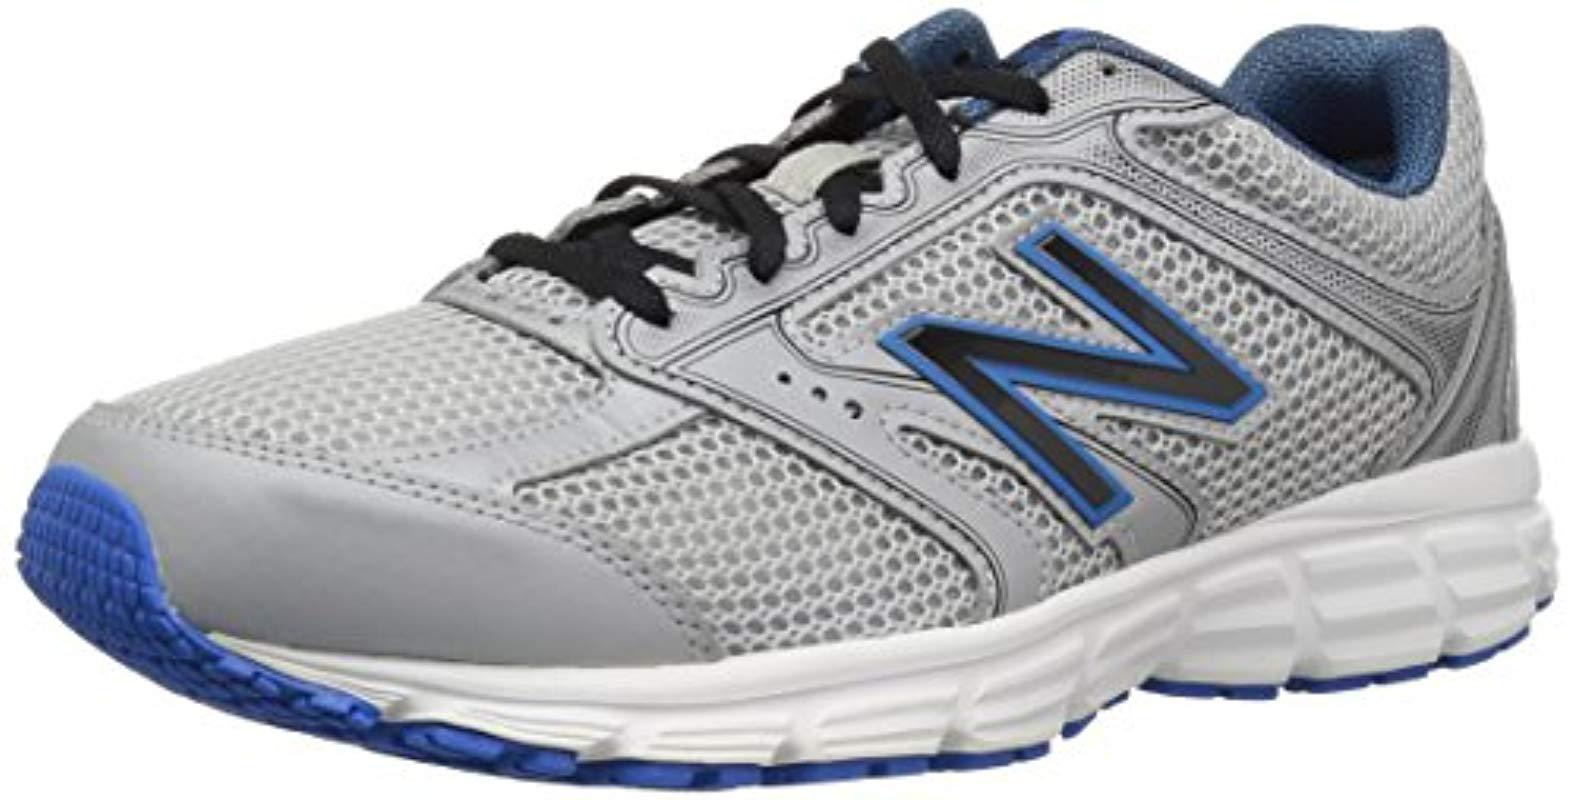 New Lyst Running For Shoe Cushioning Men Metallic In 460v2 Balance rrwqUId